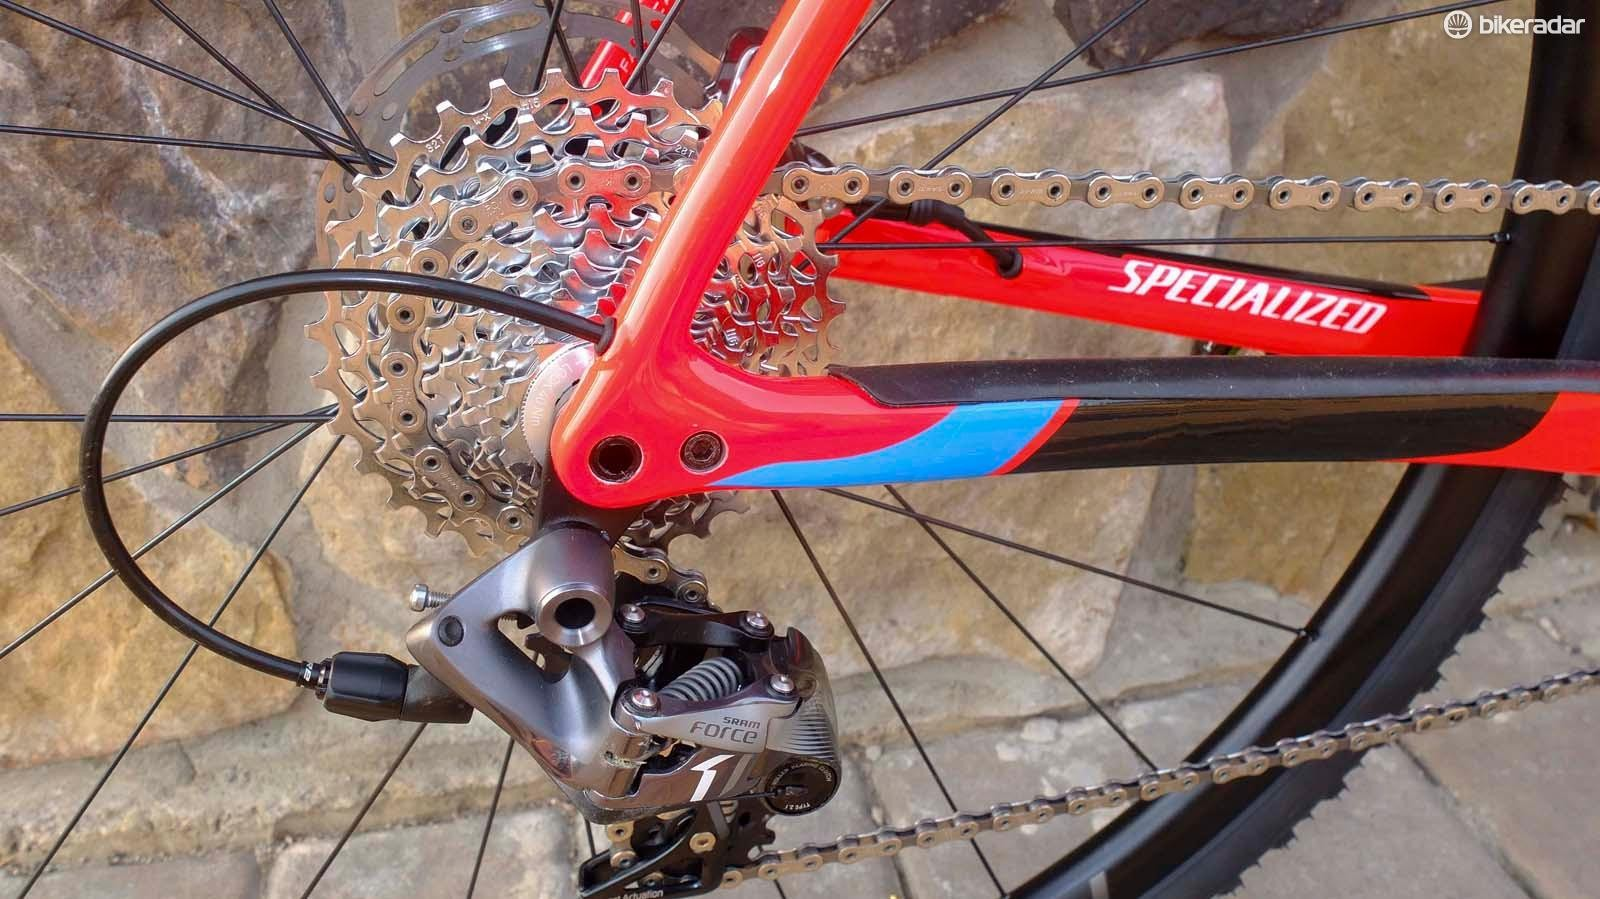 Specialized has reverted to a 142mm rear thru-axle for simple compatibility